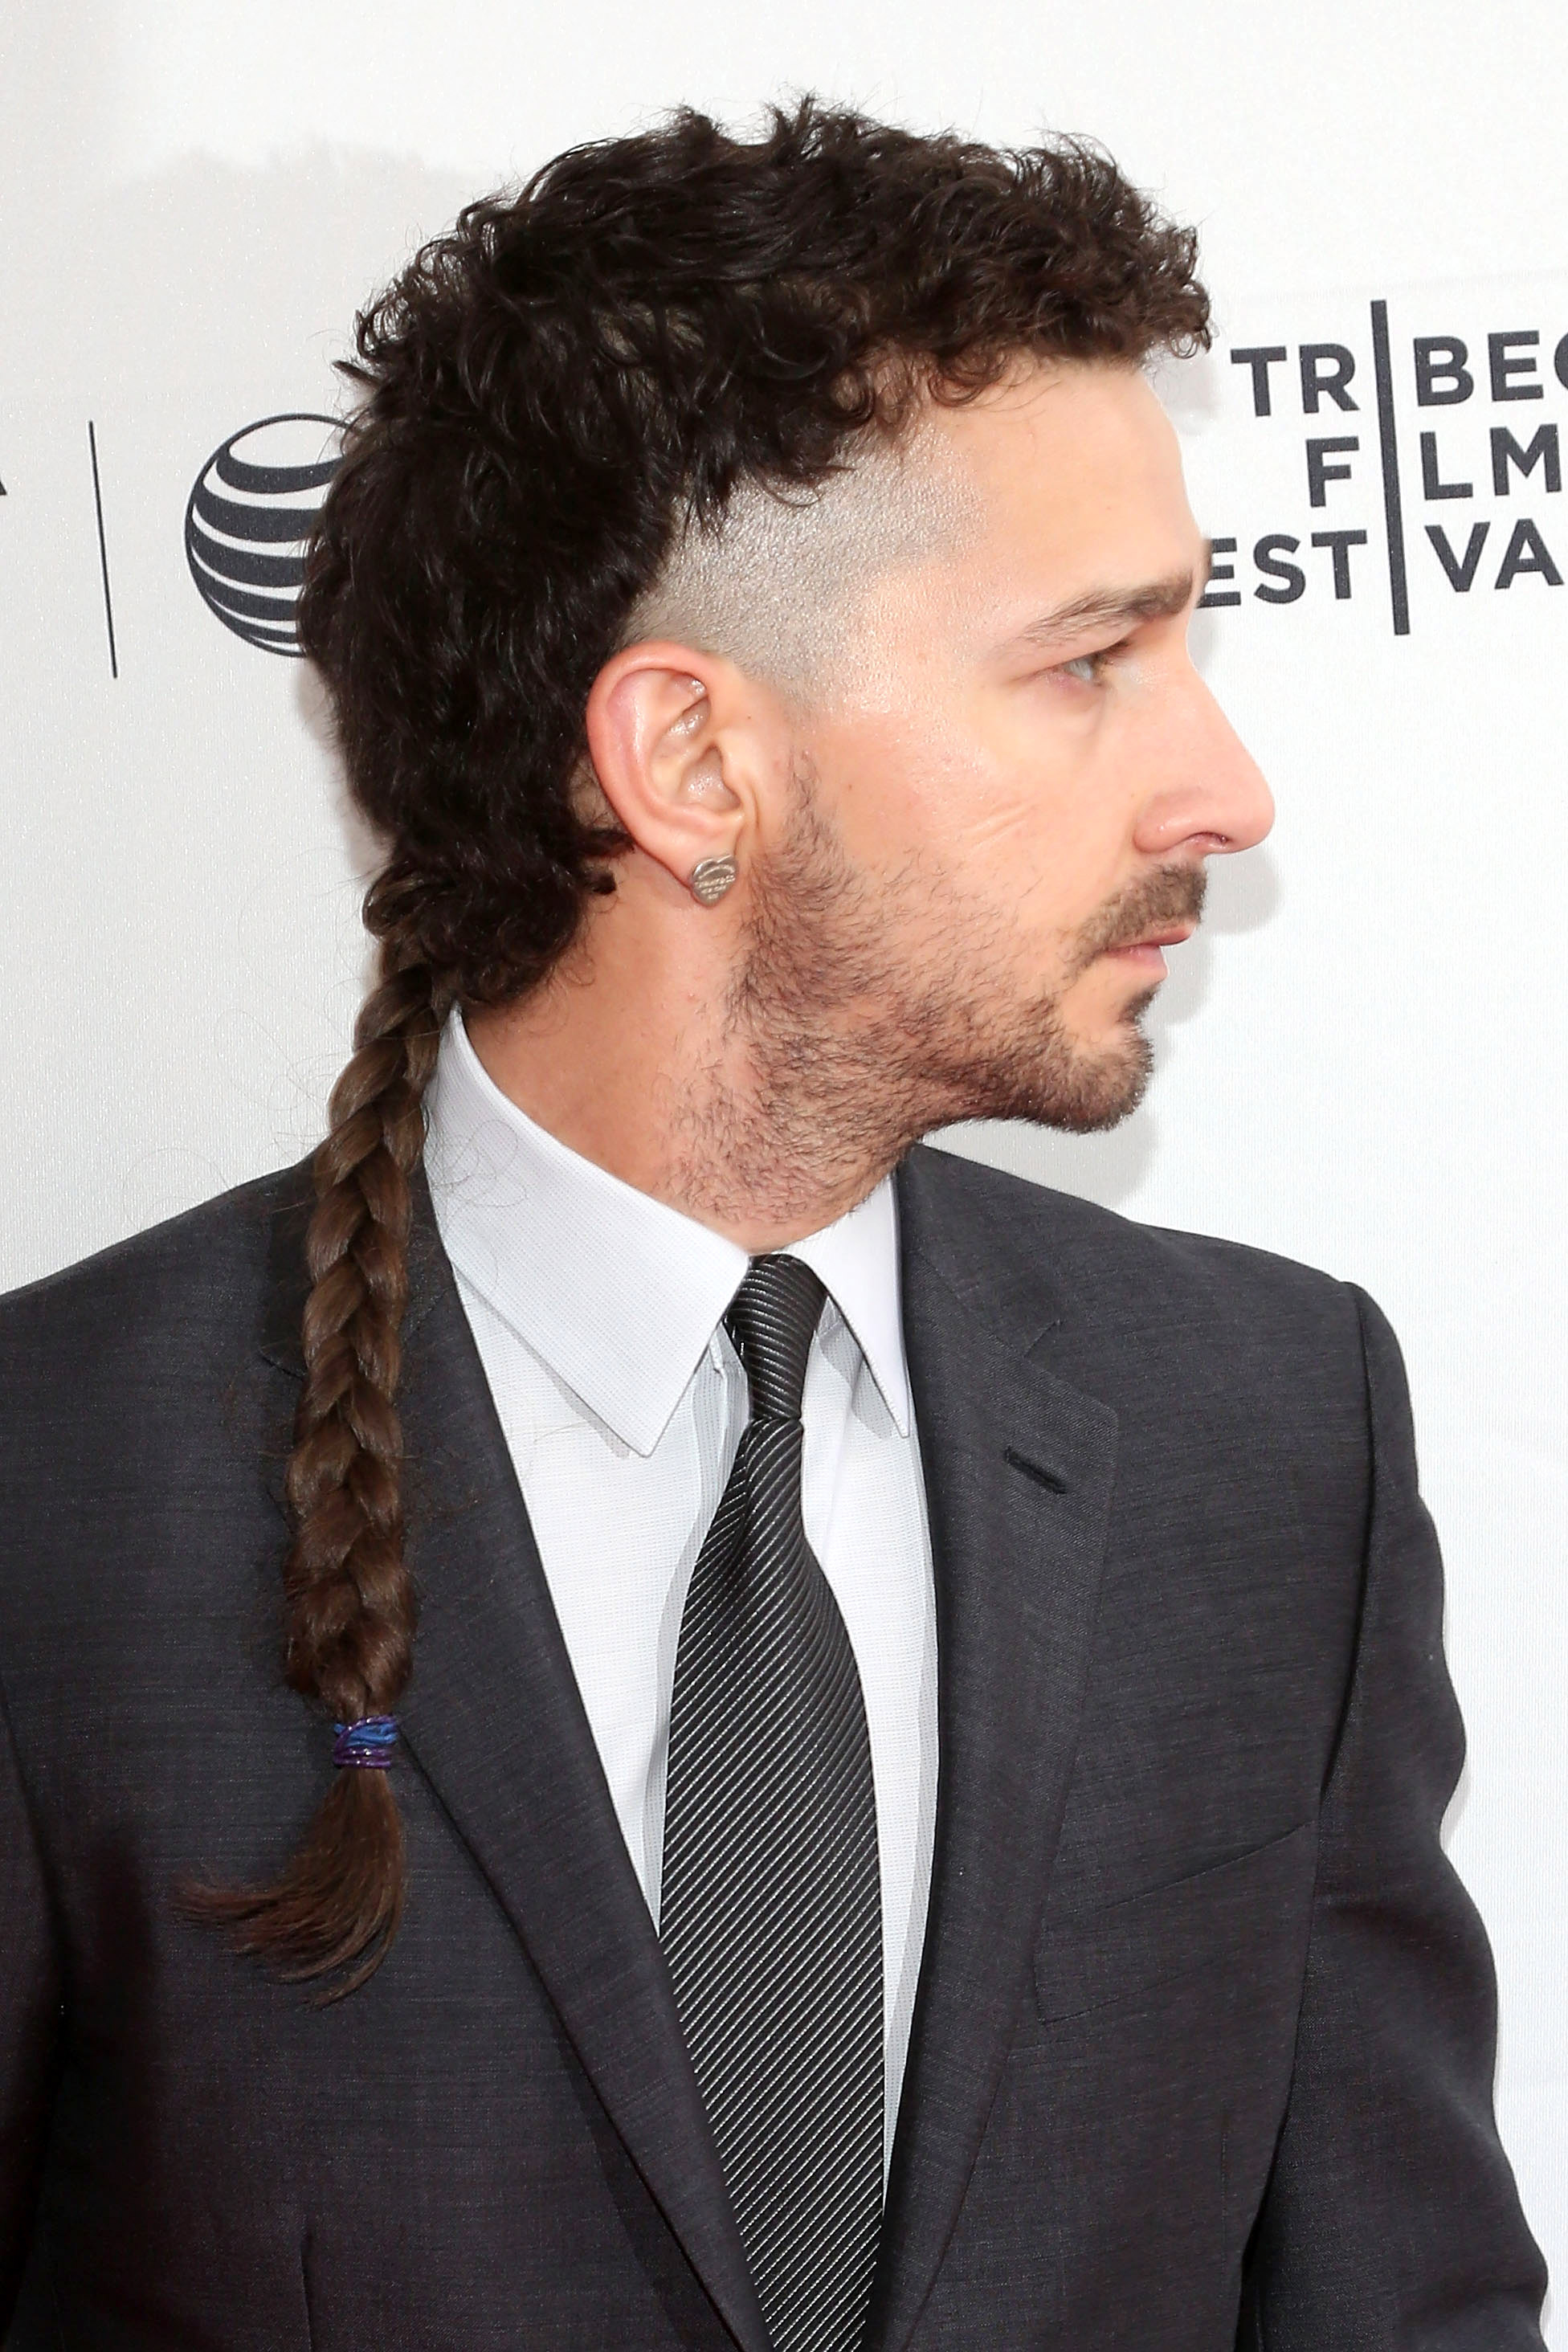 Executive producer Shia LaBeouf attends the world premiere of  LoveTrue  during the 2015 Tribeca Film Festival at SVA Theatre 2 on April 16, 2015 in New York City